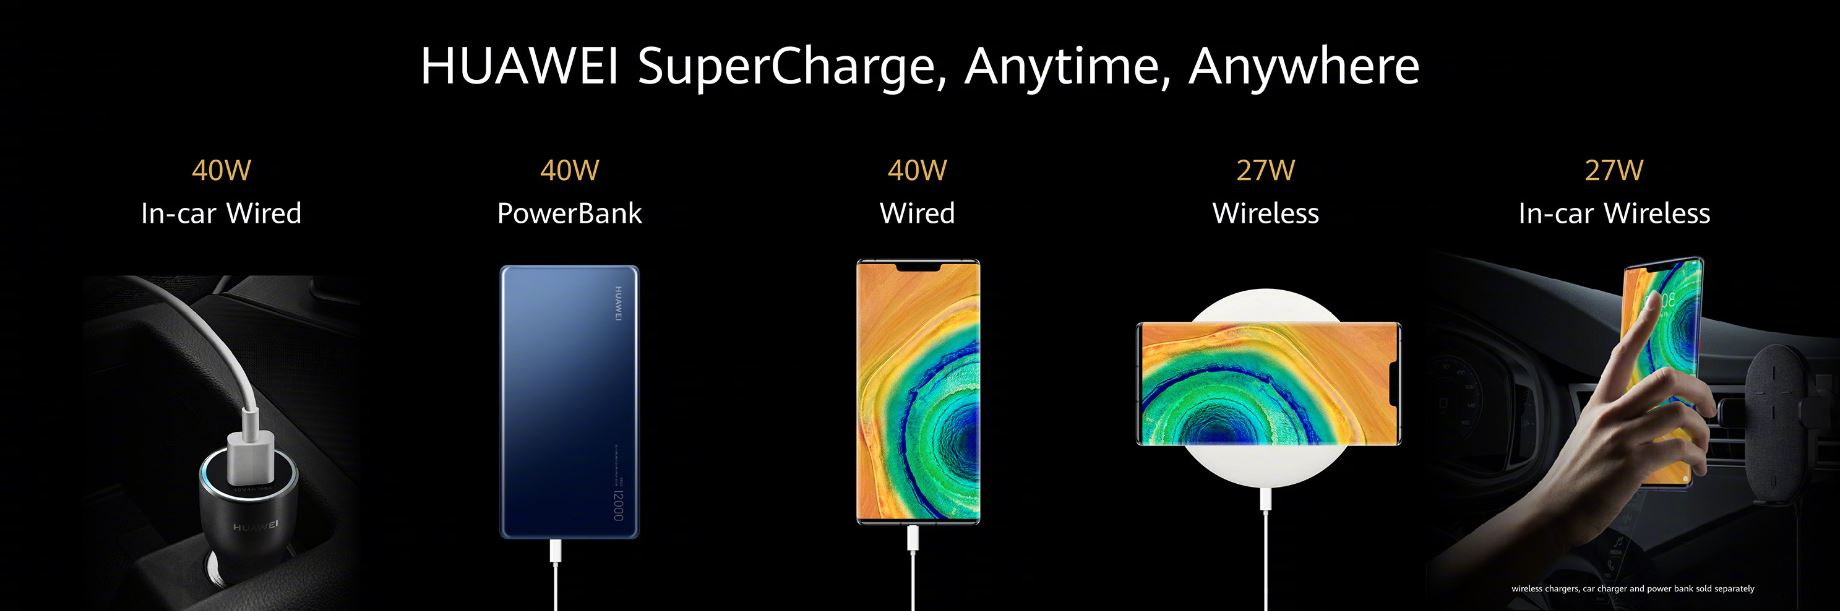 Huawei Mate 30 Series: New Batteries, New Charging and New Wireless Reverse Charging